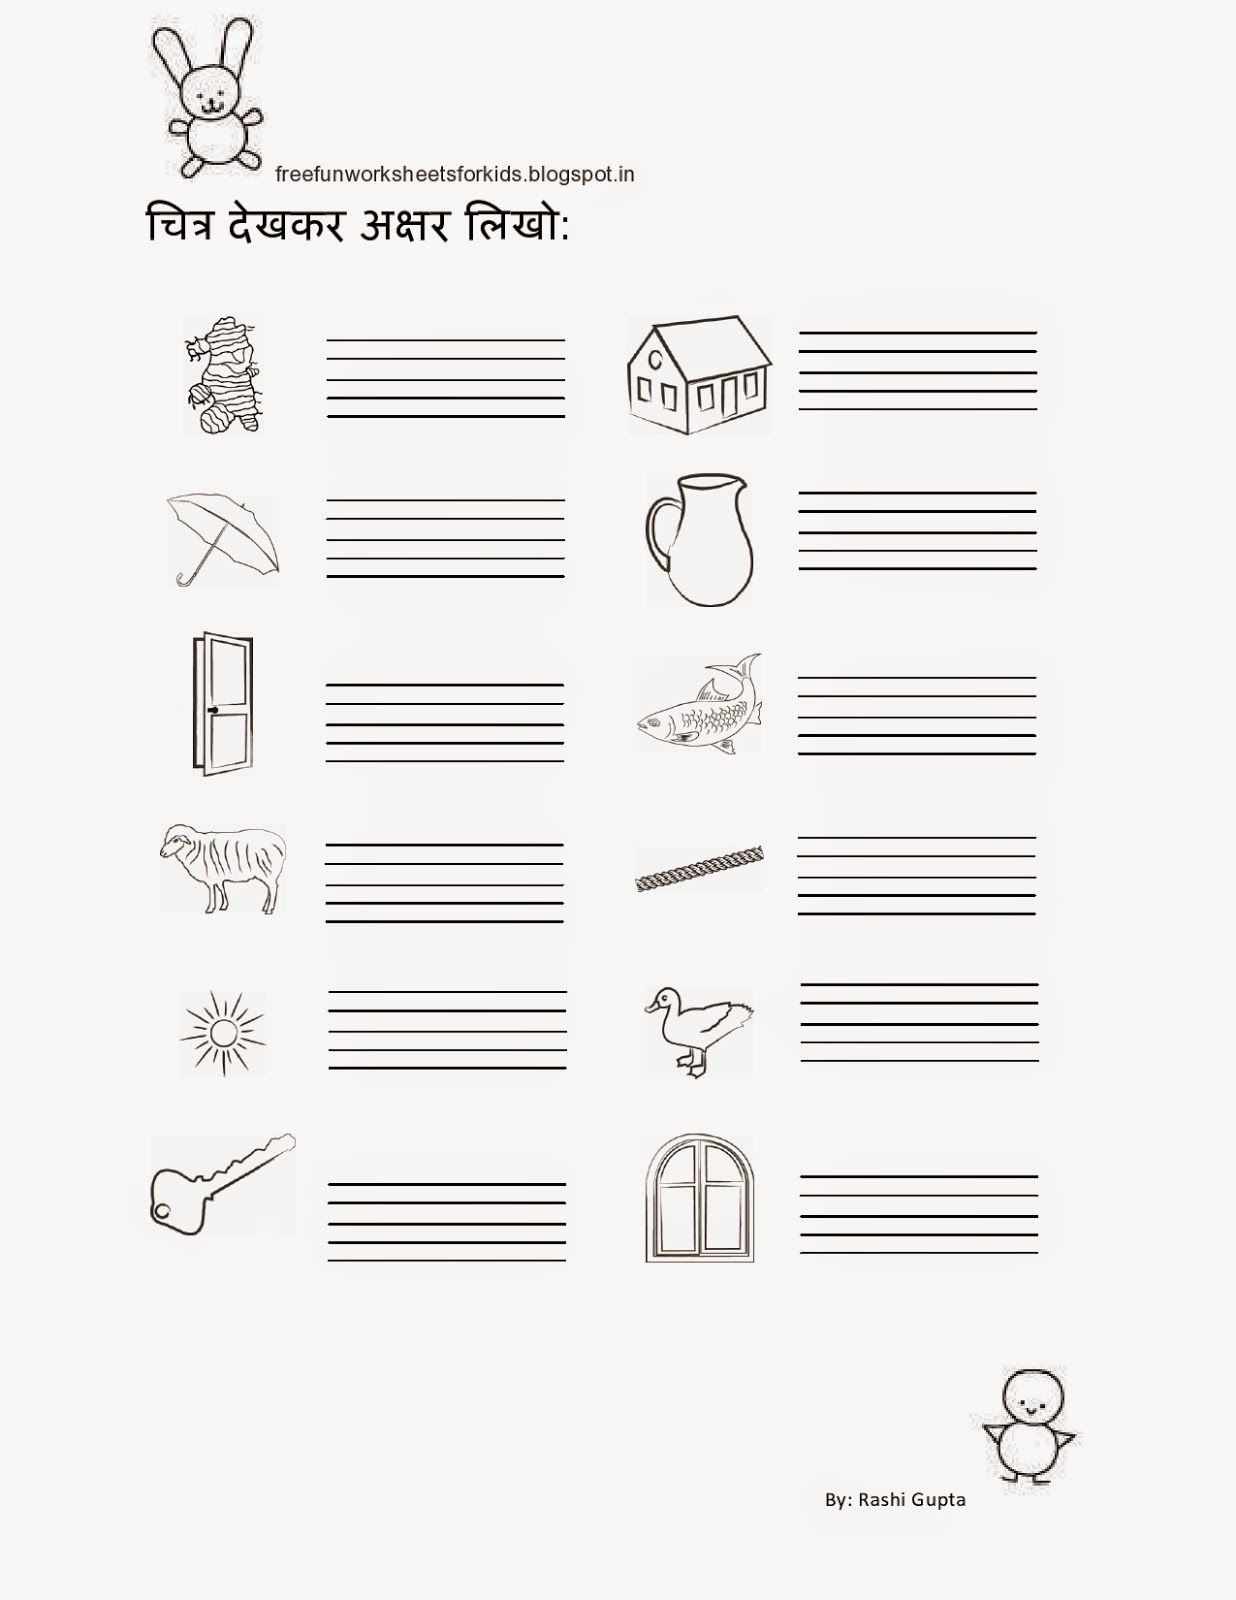 Free Fun Worksheets For Kids: Free Printable Fun Hindi Worksheets - Free Printable Hindi Comprehension Worksheets For Grade 3